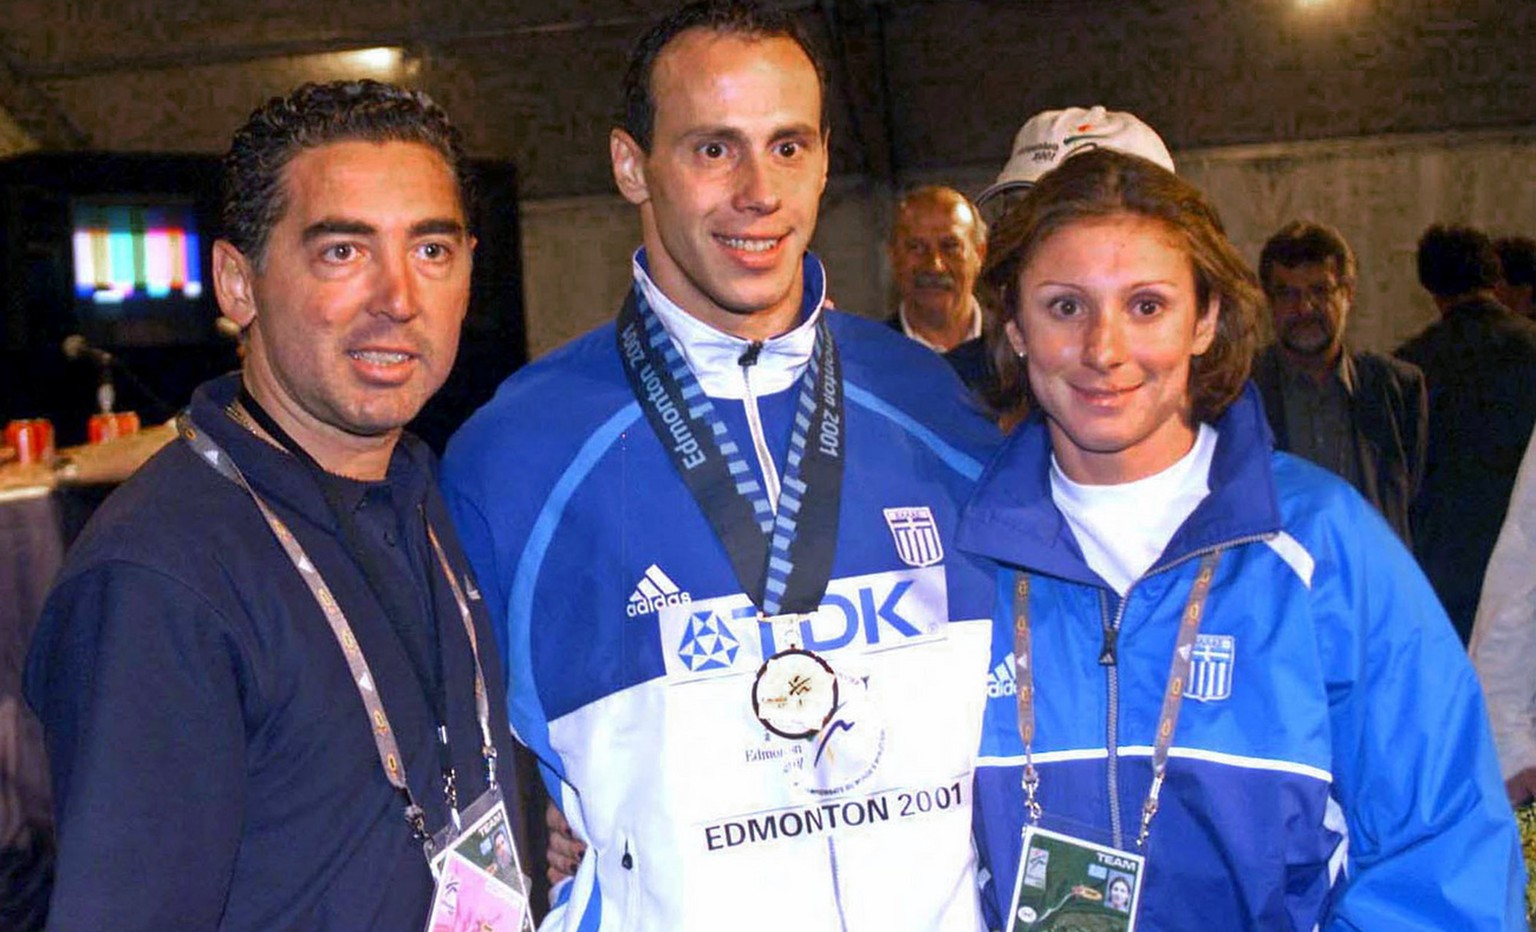 This is an August 9, 2001 photo of Greek athletes Konstantinos Kenteris, center, and Katerina Thanou, the 100-meter silver medalist in Sydney, right with their coach Christos Tsekos taken at the World Championships in Edmonton, Canada. The two Greek Olympic sprinters were hospitalized Friday, Aug. 13, 2004 with injuries from a motorcycle wreck hours before a hearing on whether they intentionally dodged drug testers. (AP Photo/Newsport)